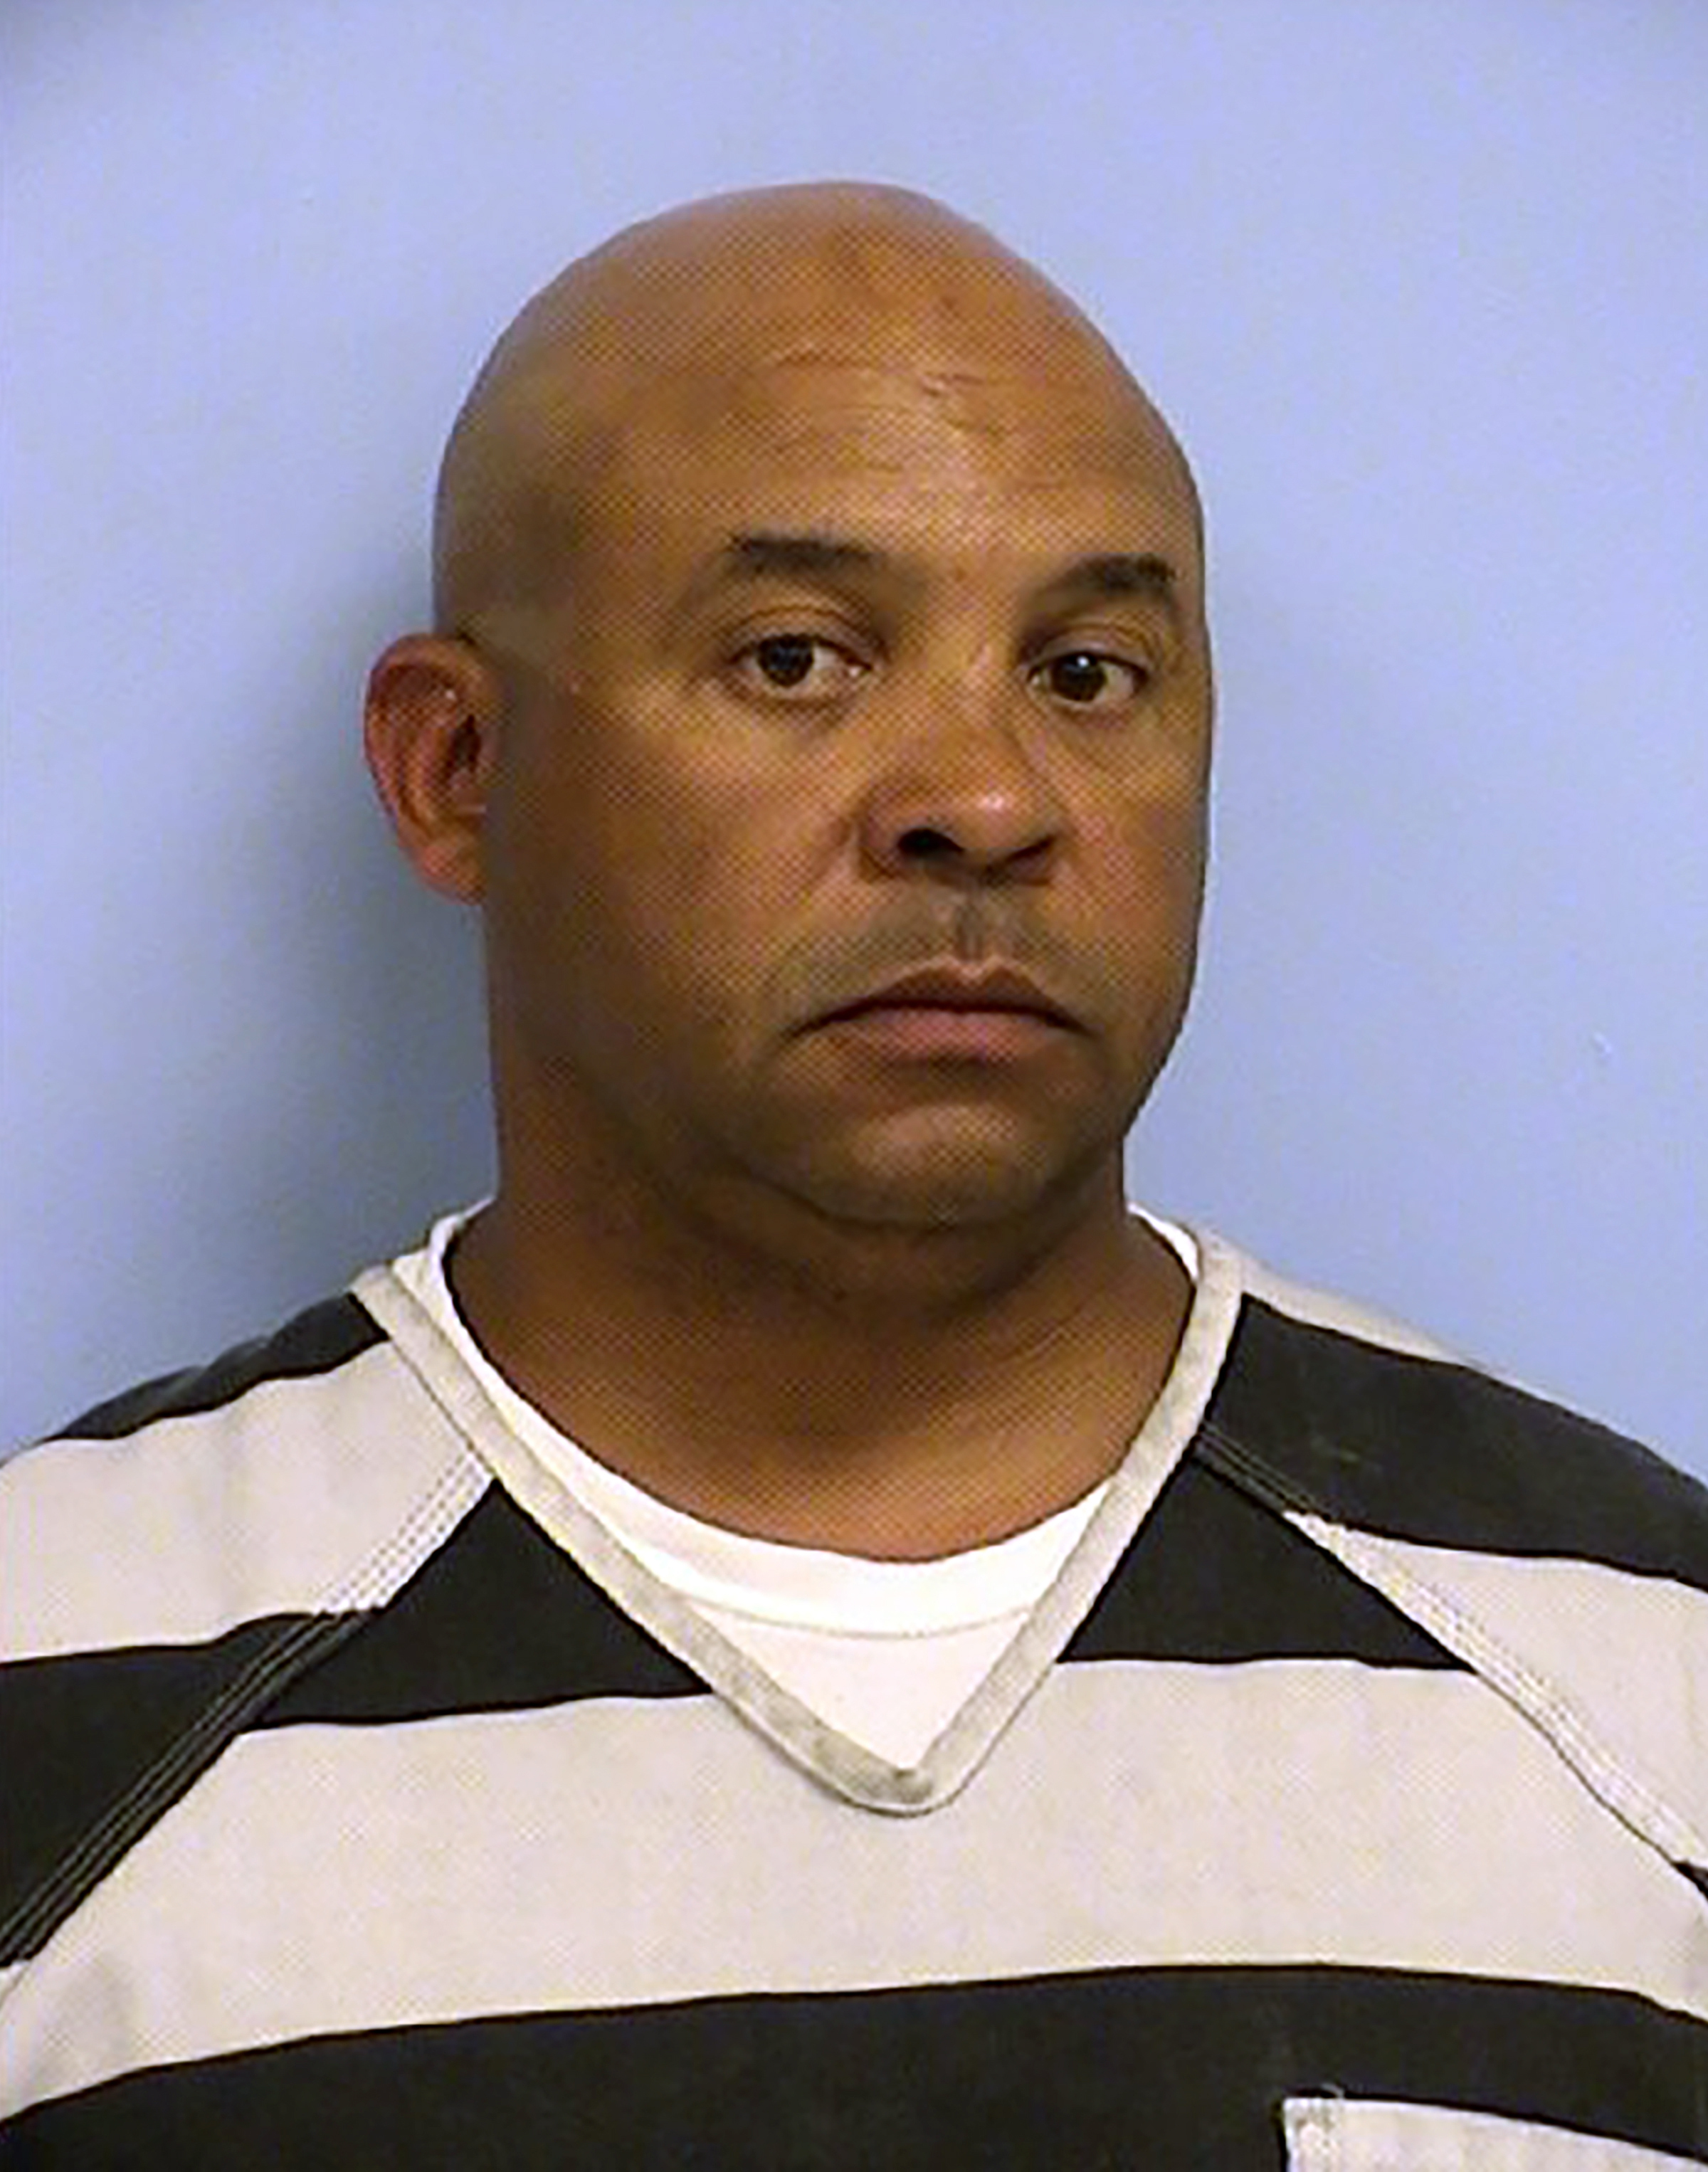 Top law enforcement official in Texas accused of rape, fired